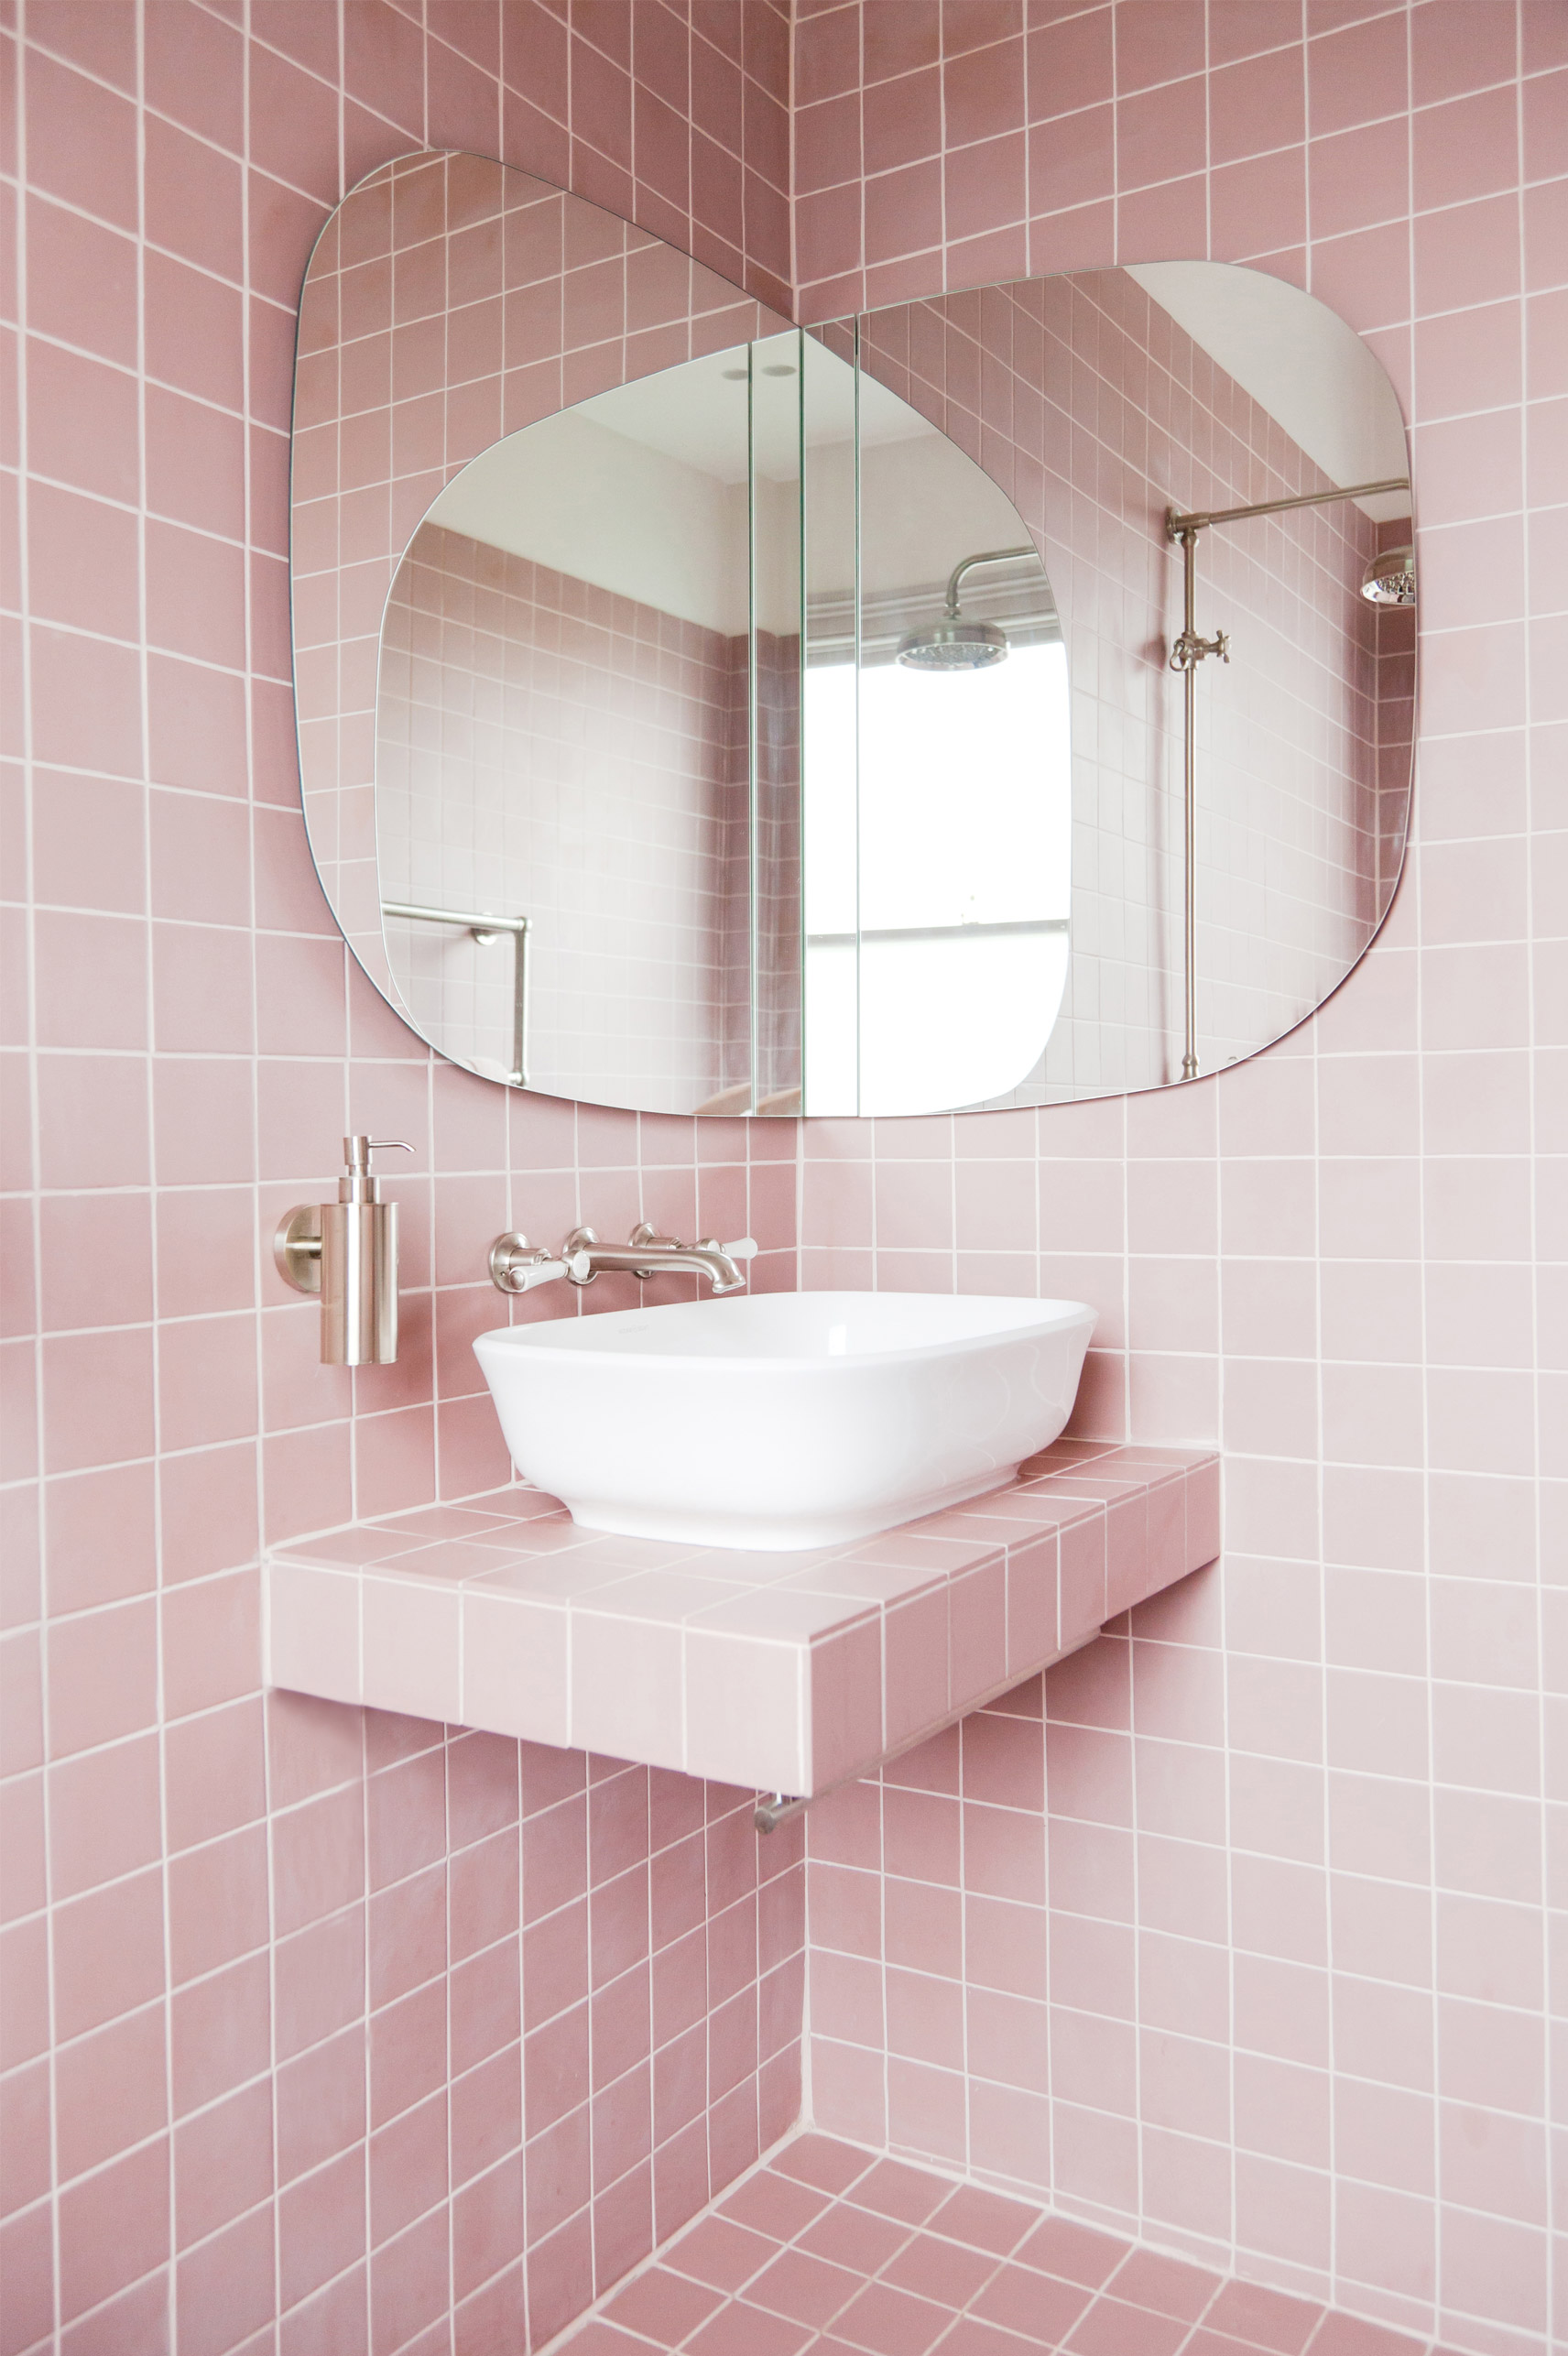 2lg studio our dream pink bathroom design \u2013 revealedbespoke fitted mirror design by 2lg hides a cupboard and shaver point